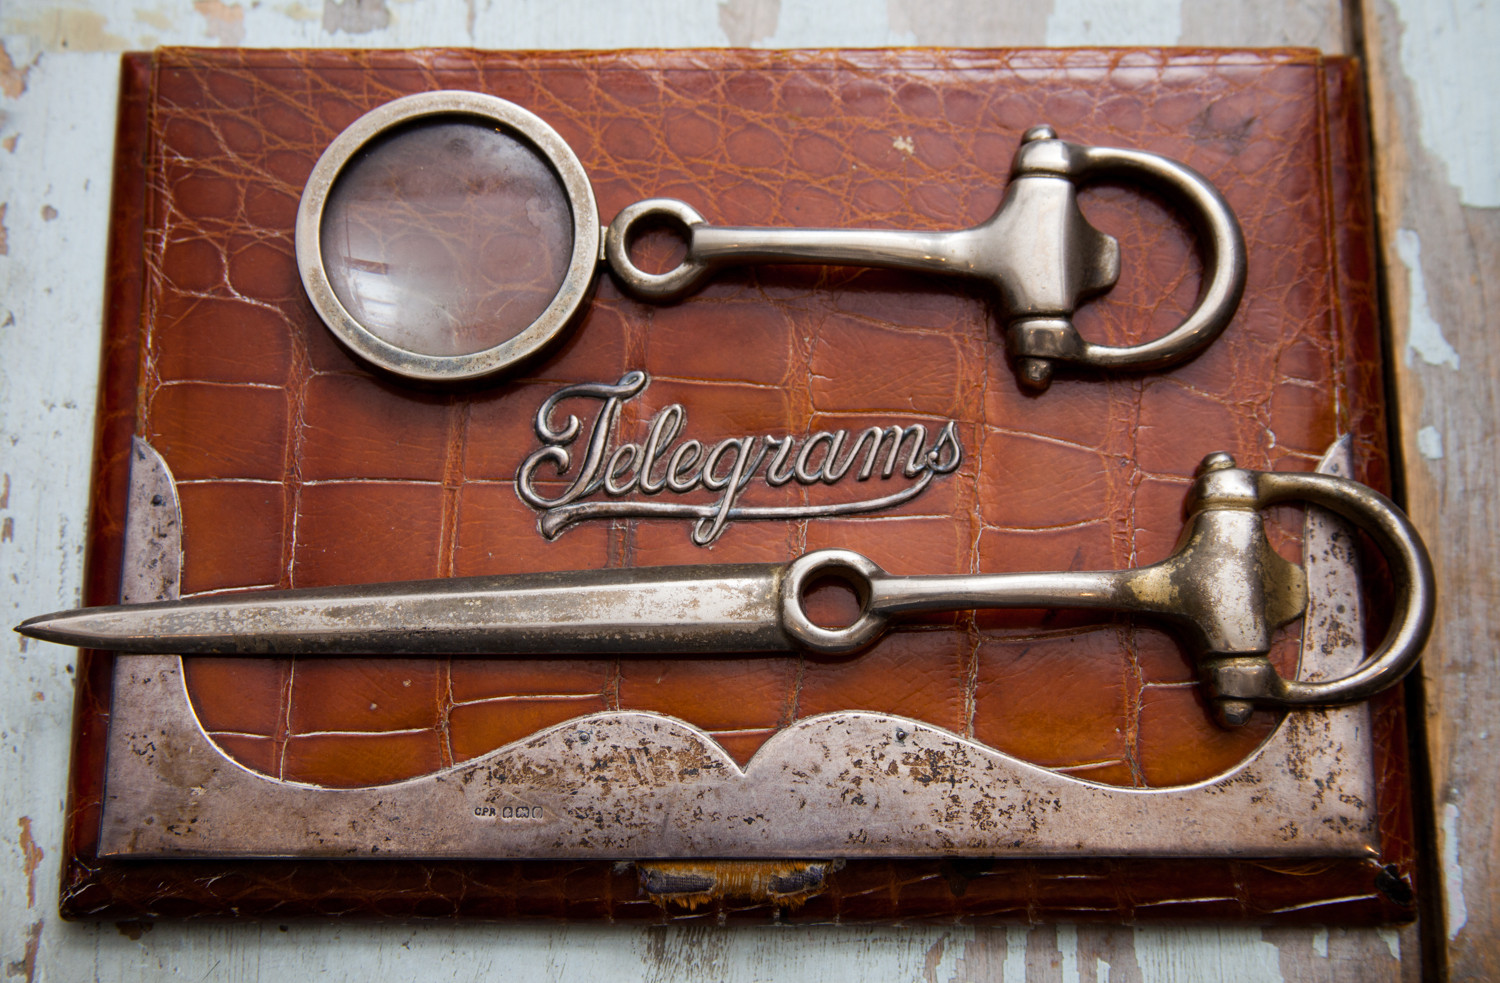 Antique desk accessories boast equestrian accents and a perfect patina.